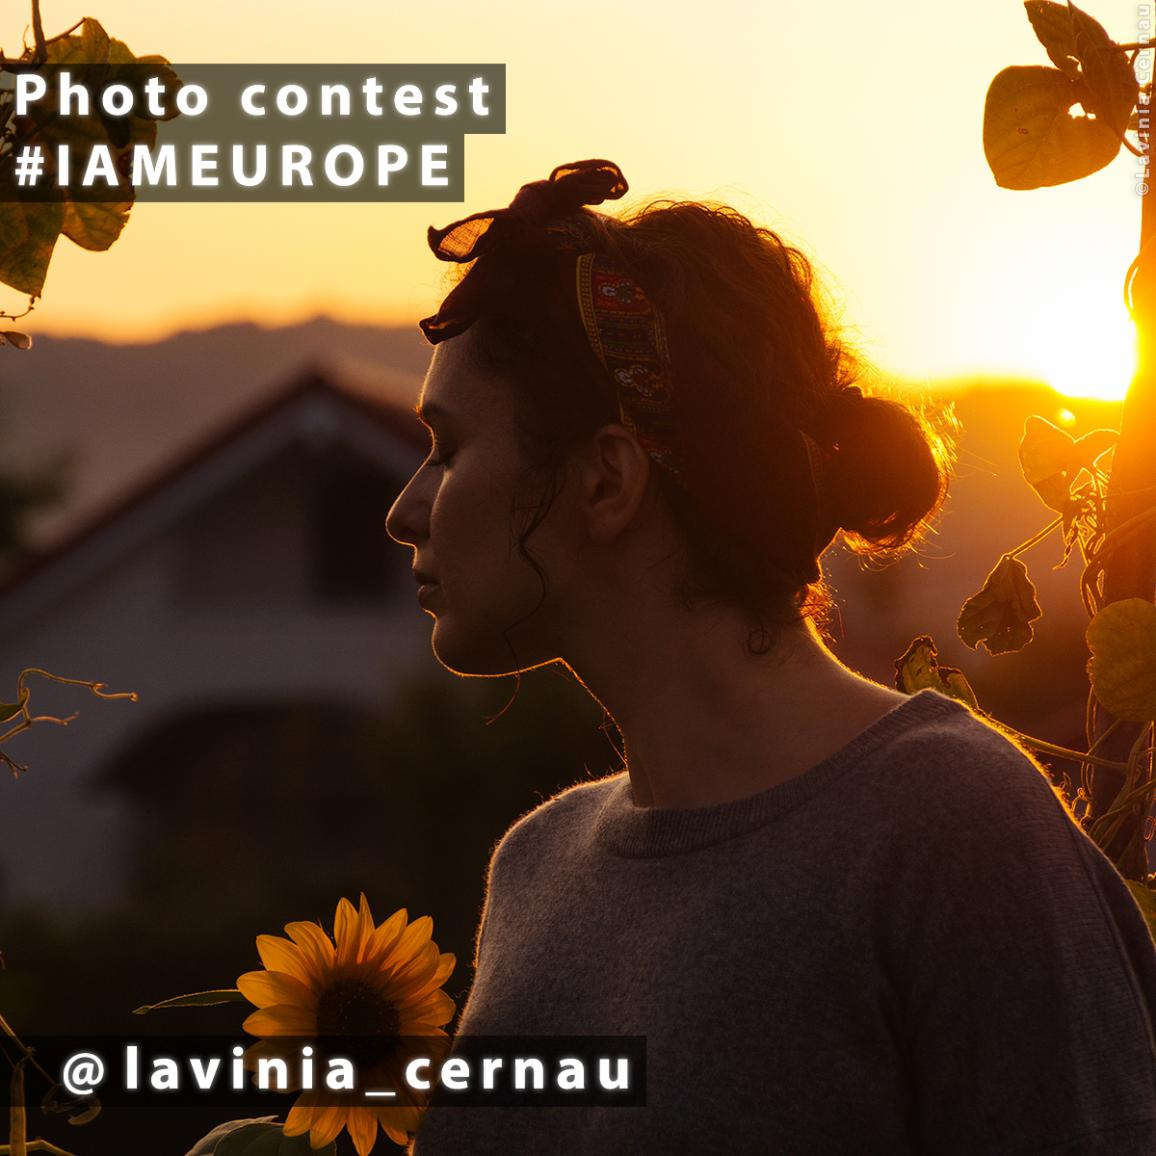 Special thanks to the Romanian photographer Lavinia Cernau (instagram @lavinia_cernau) for your photo contest testimonial